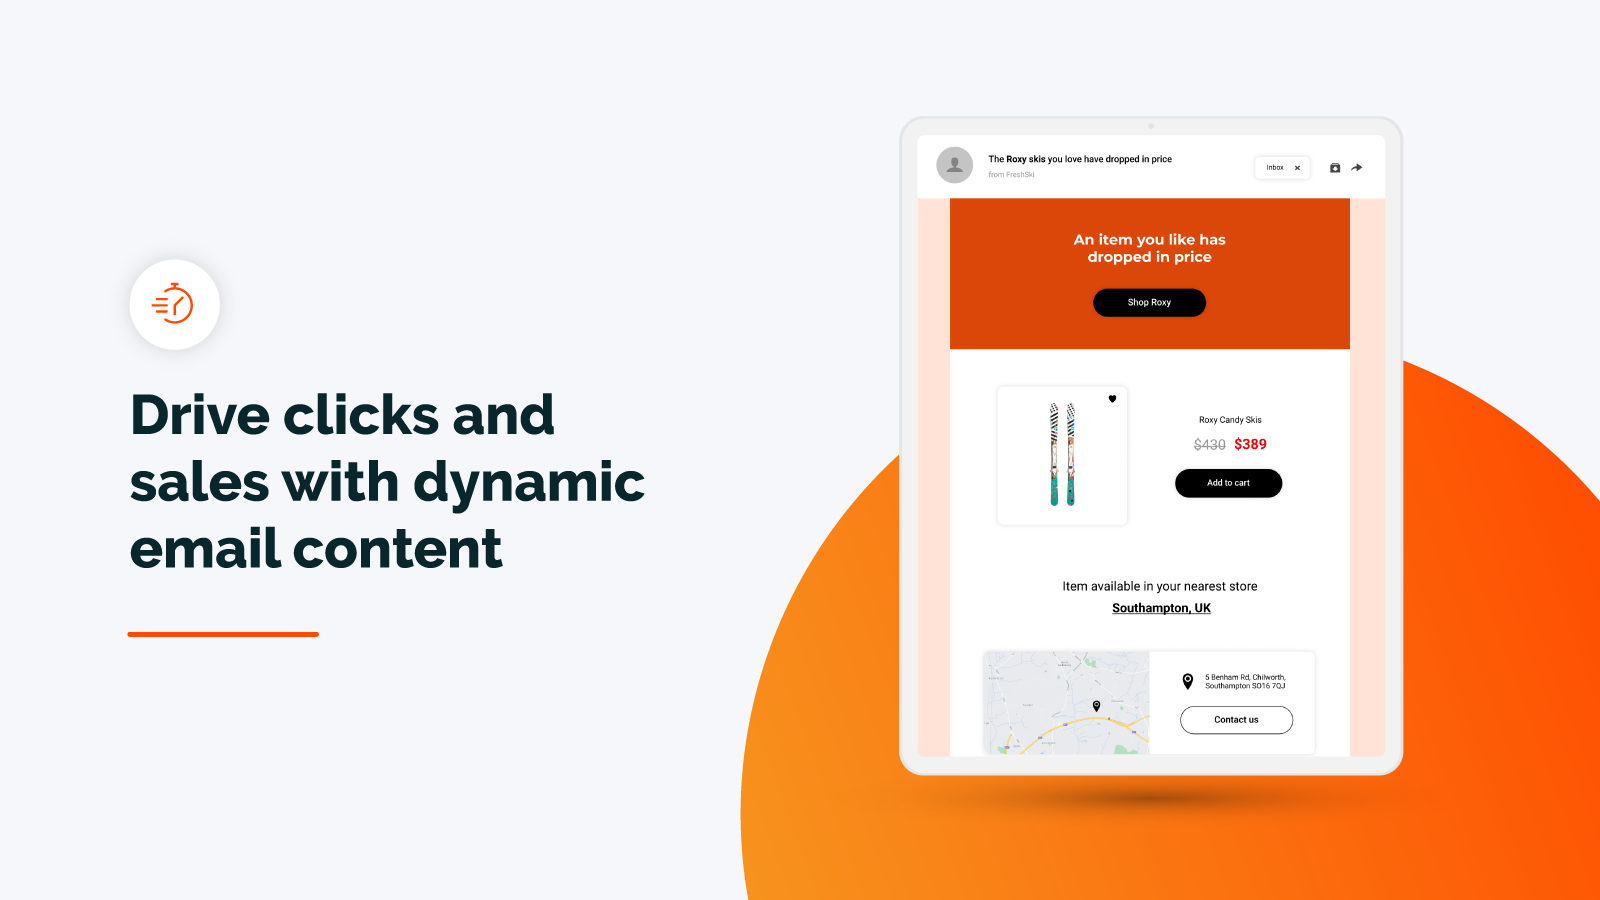 Drive clicks and sales with dynamic emails